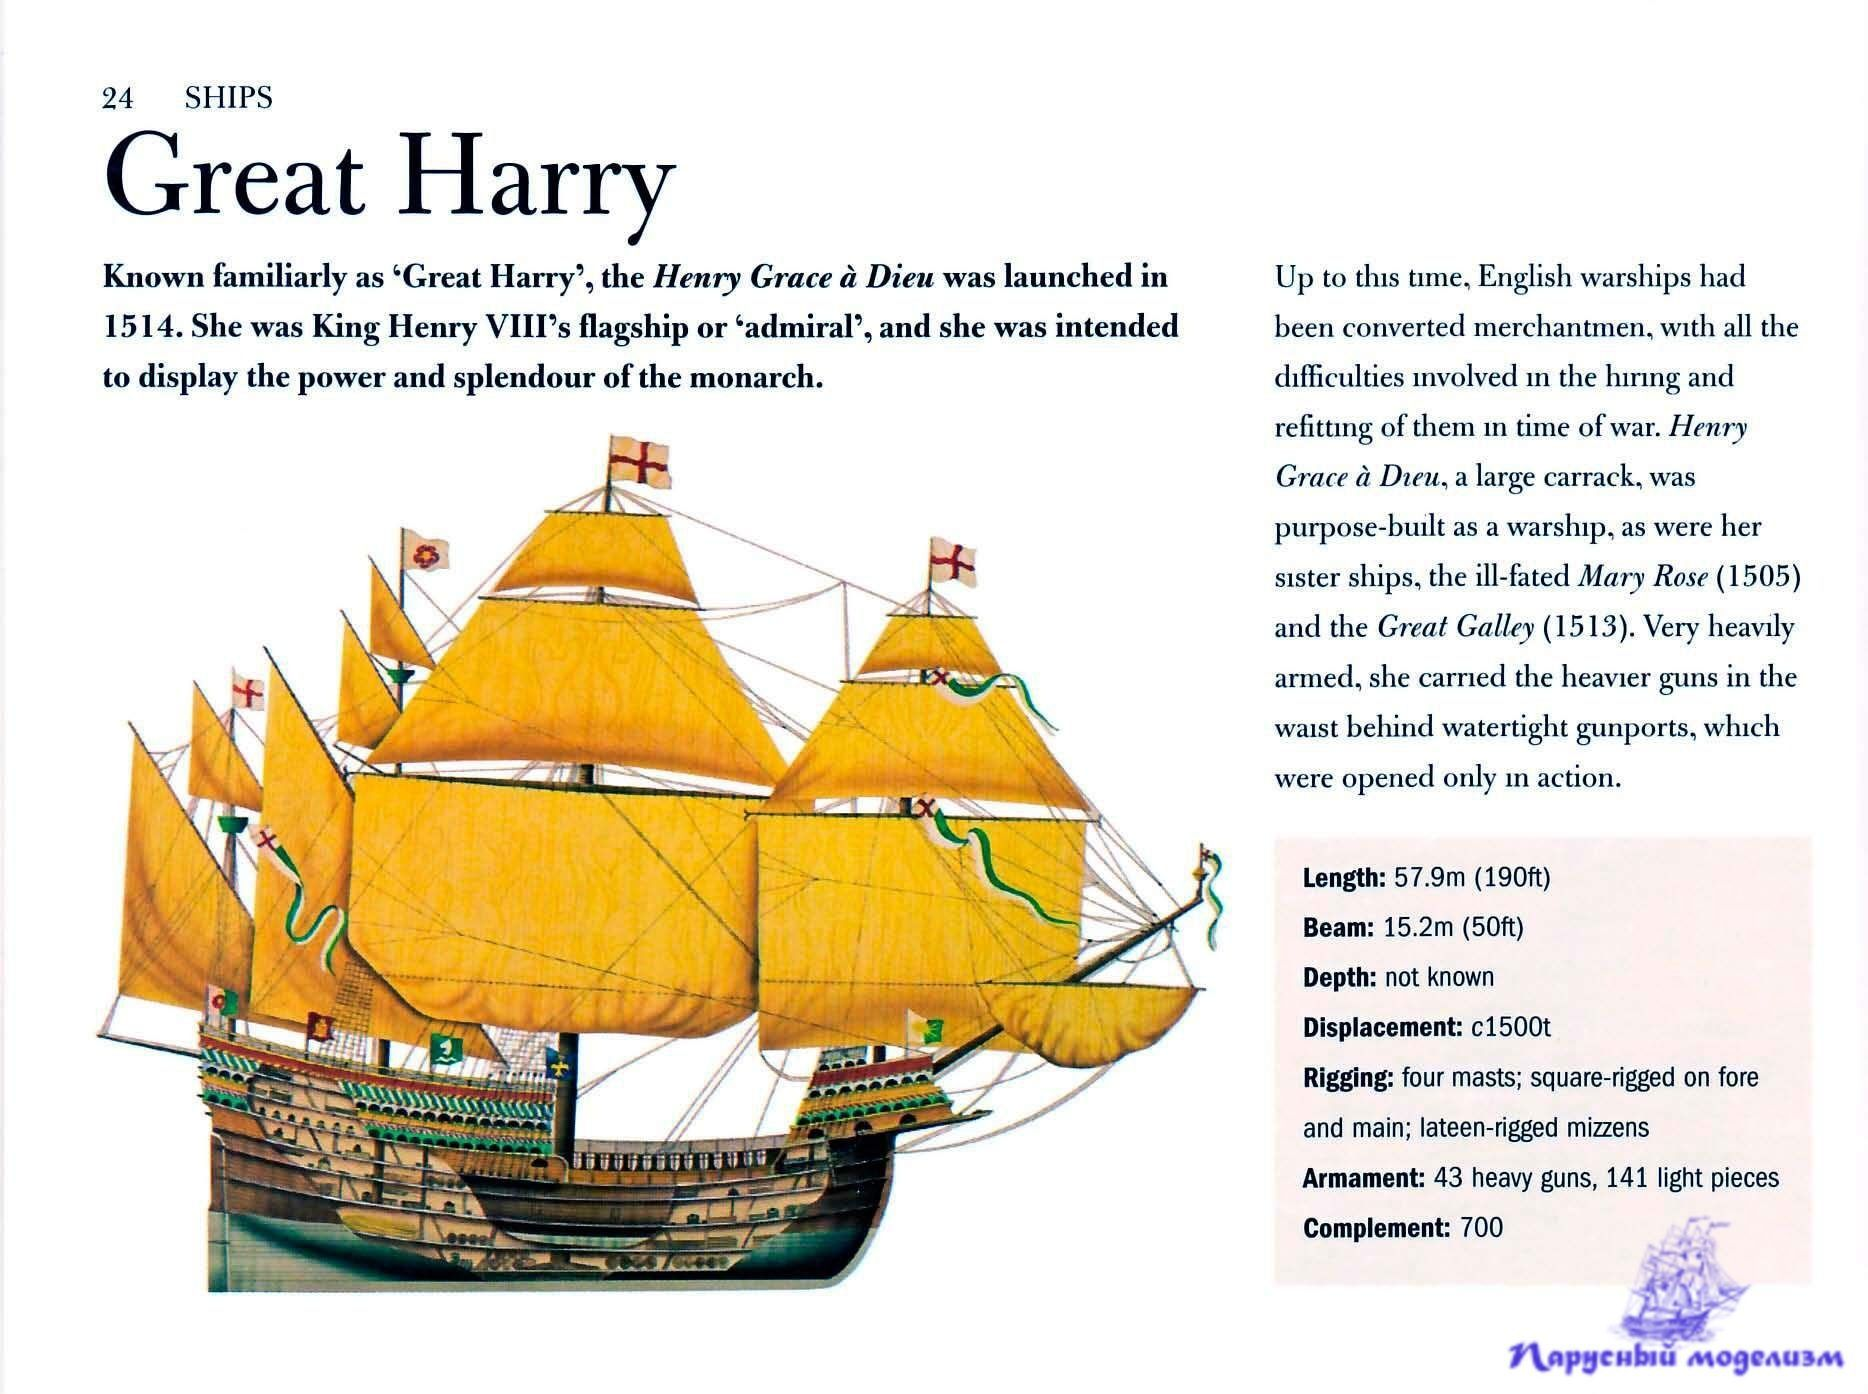 Great Harry The History and Specifications of 300 World